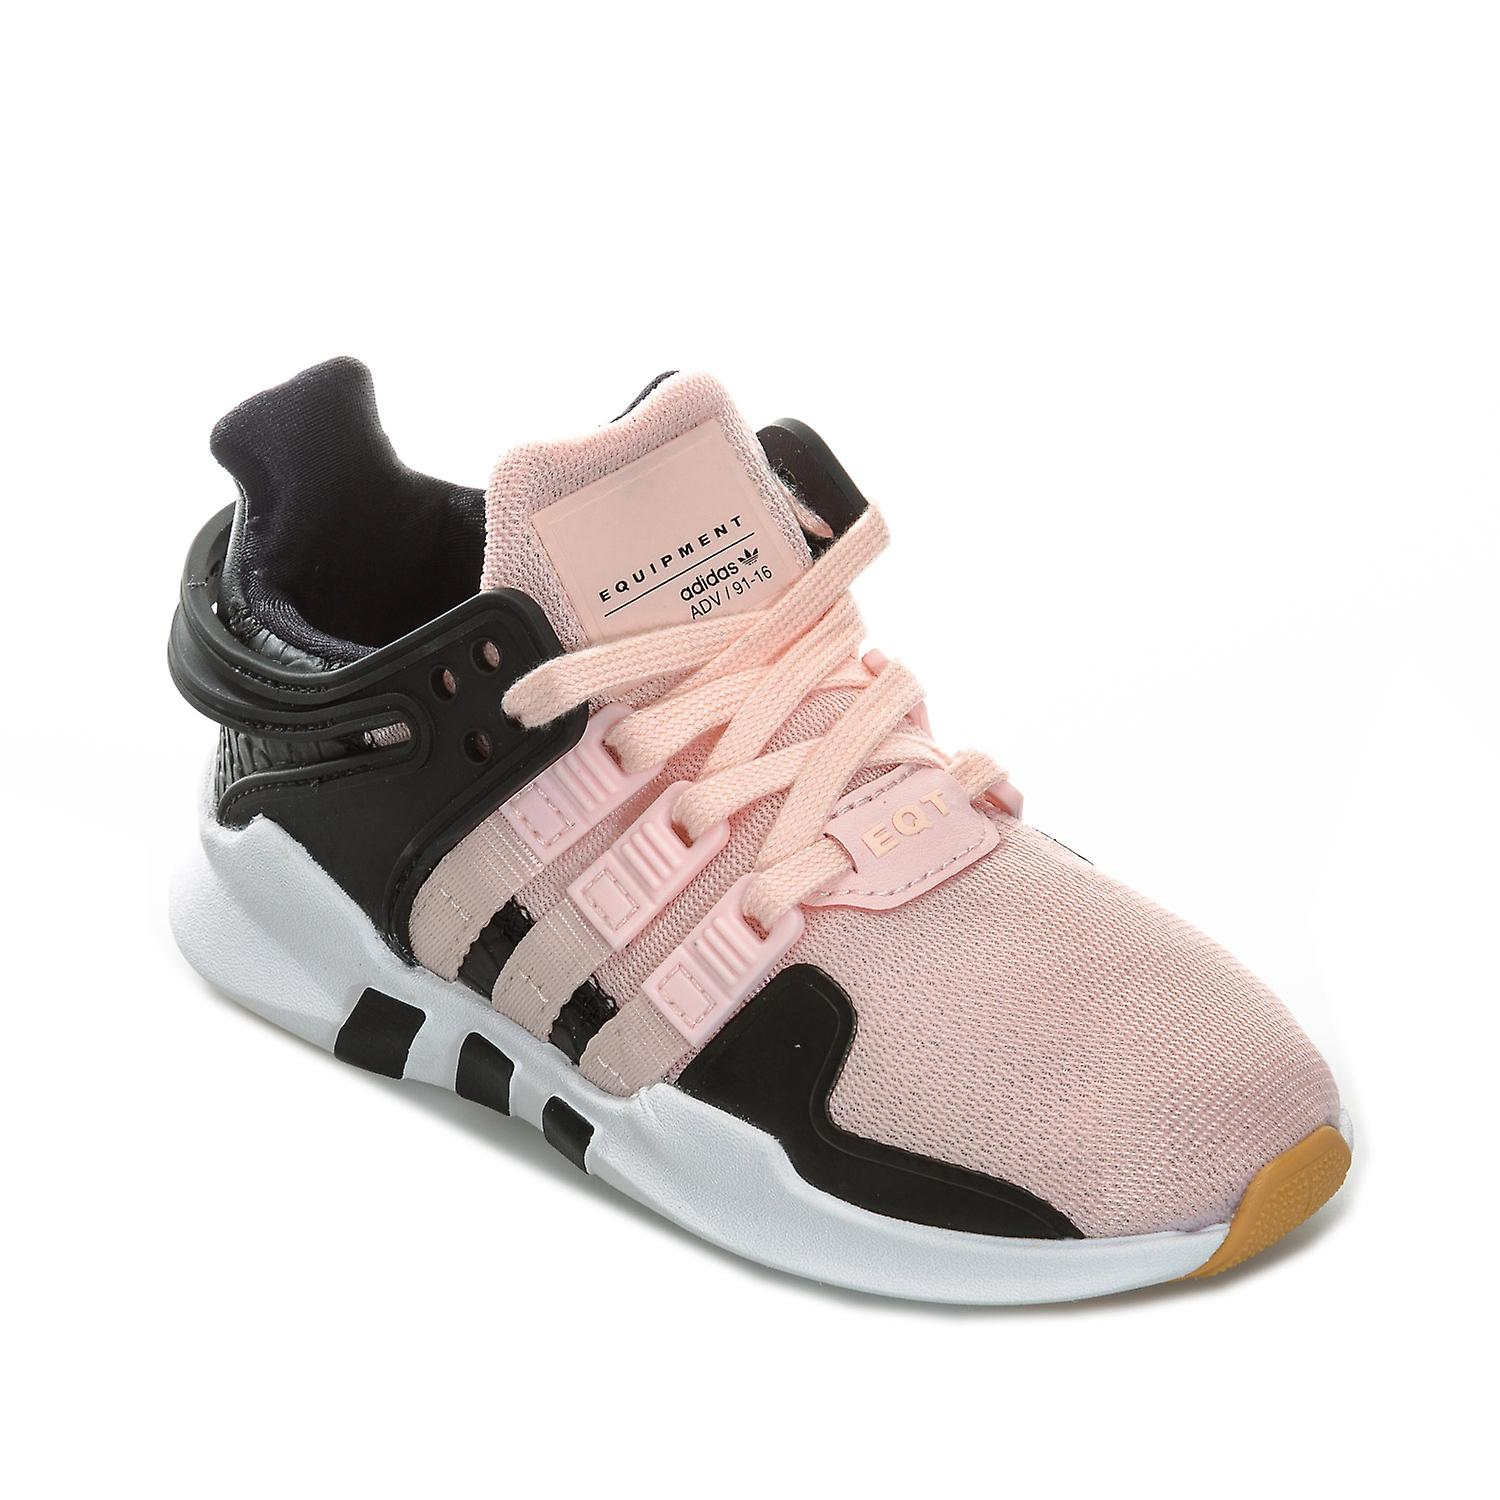 b05d5544330b Children Girls adidas Originals Eqt Support Adv Trainers In Pink- Lace